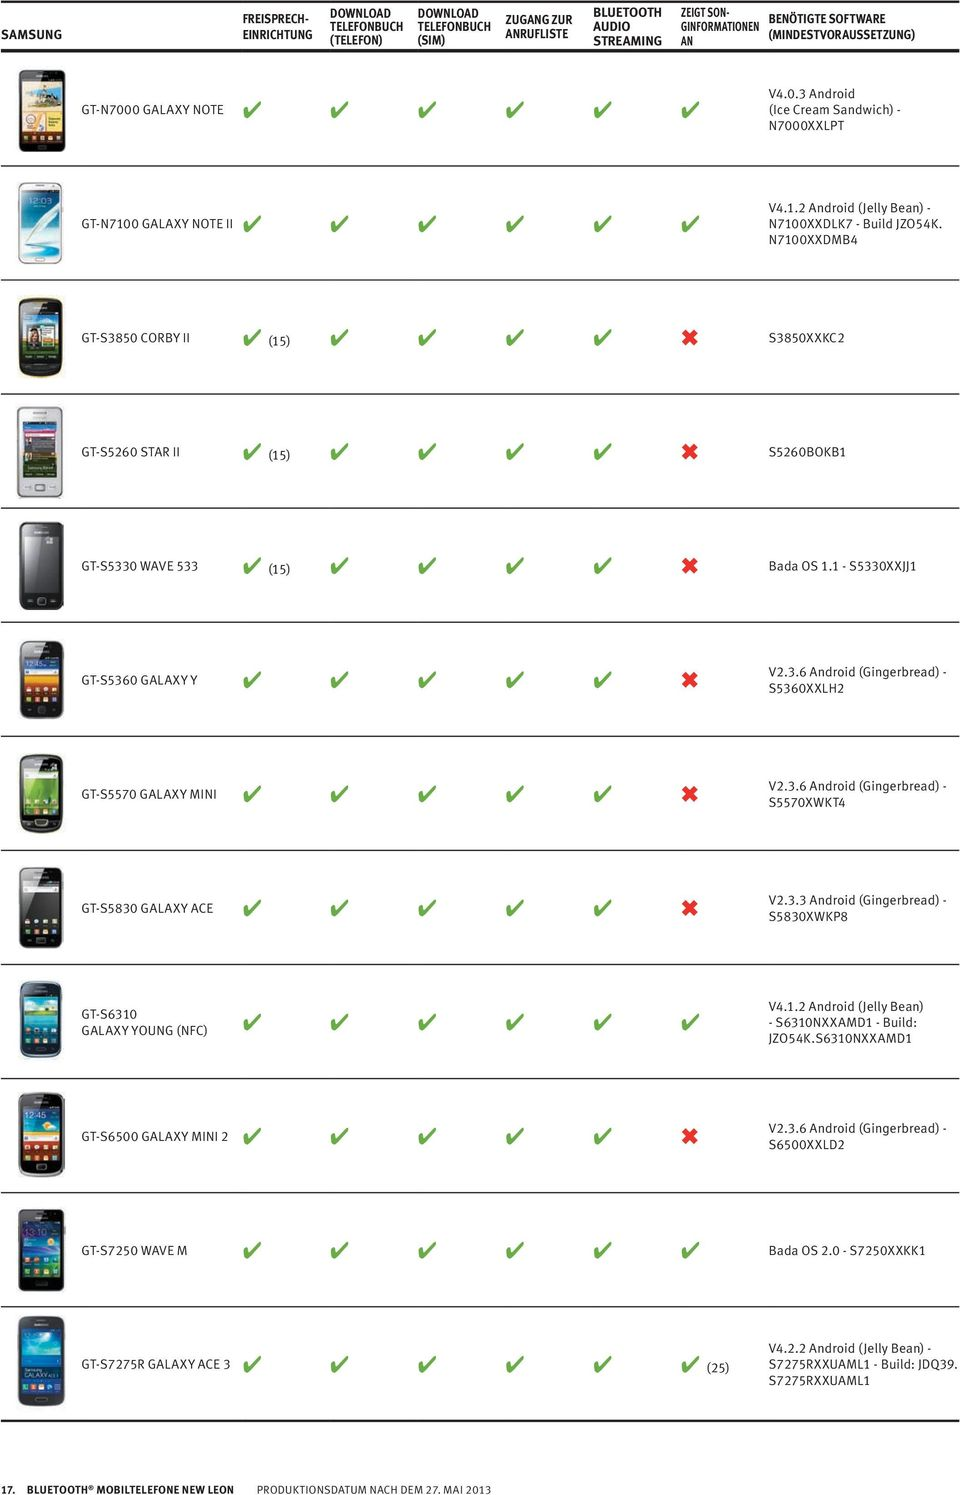 3.6 Android (Gingerbread) - S5570XWKT4 GT-S5830 GALAXY ACE V2.3.3 Android (Gingerbread) - S5830XWKP8 GT-S6310 GALAXY YOUNG (NFC) V4.1.2 Android (Jelly Be) - S6310NXXAMD1 - Build: JZO54K.